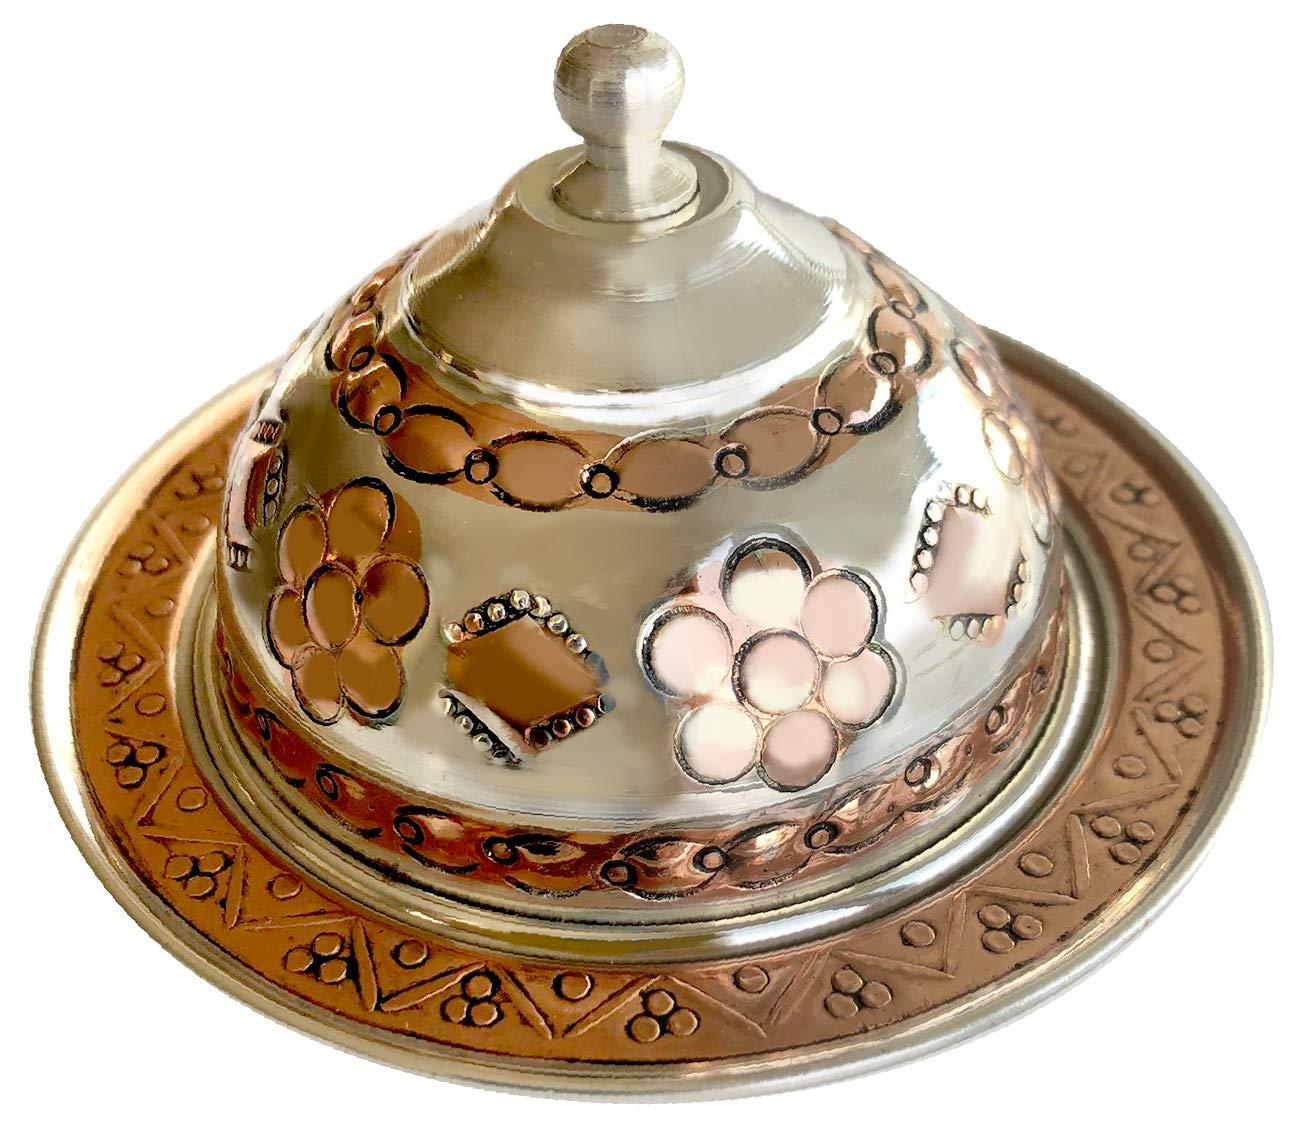 Copper Turkish Coffee Set, Six Greek Armenian Arabic Espresso Porcelain Cups Tray Sugar Bowl, with Silver-plate detail, Handcrafted by Mandalina Magic by Mandalina Magic (Image #6)